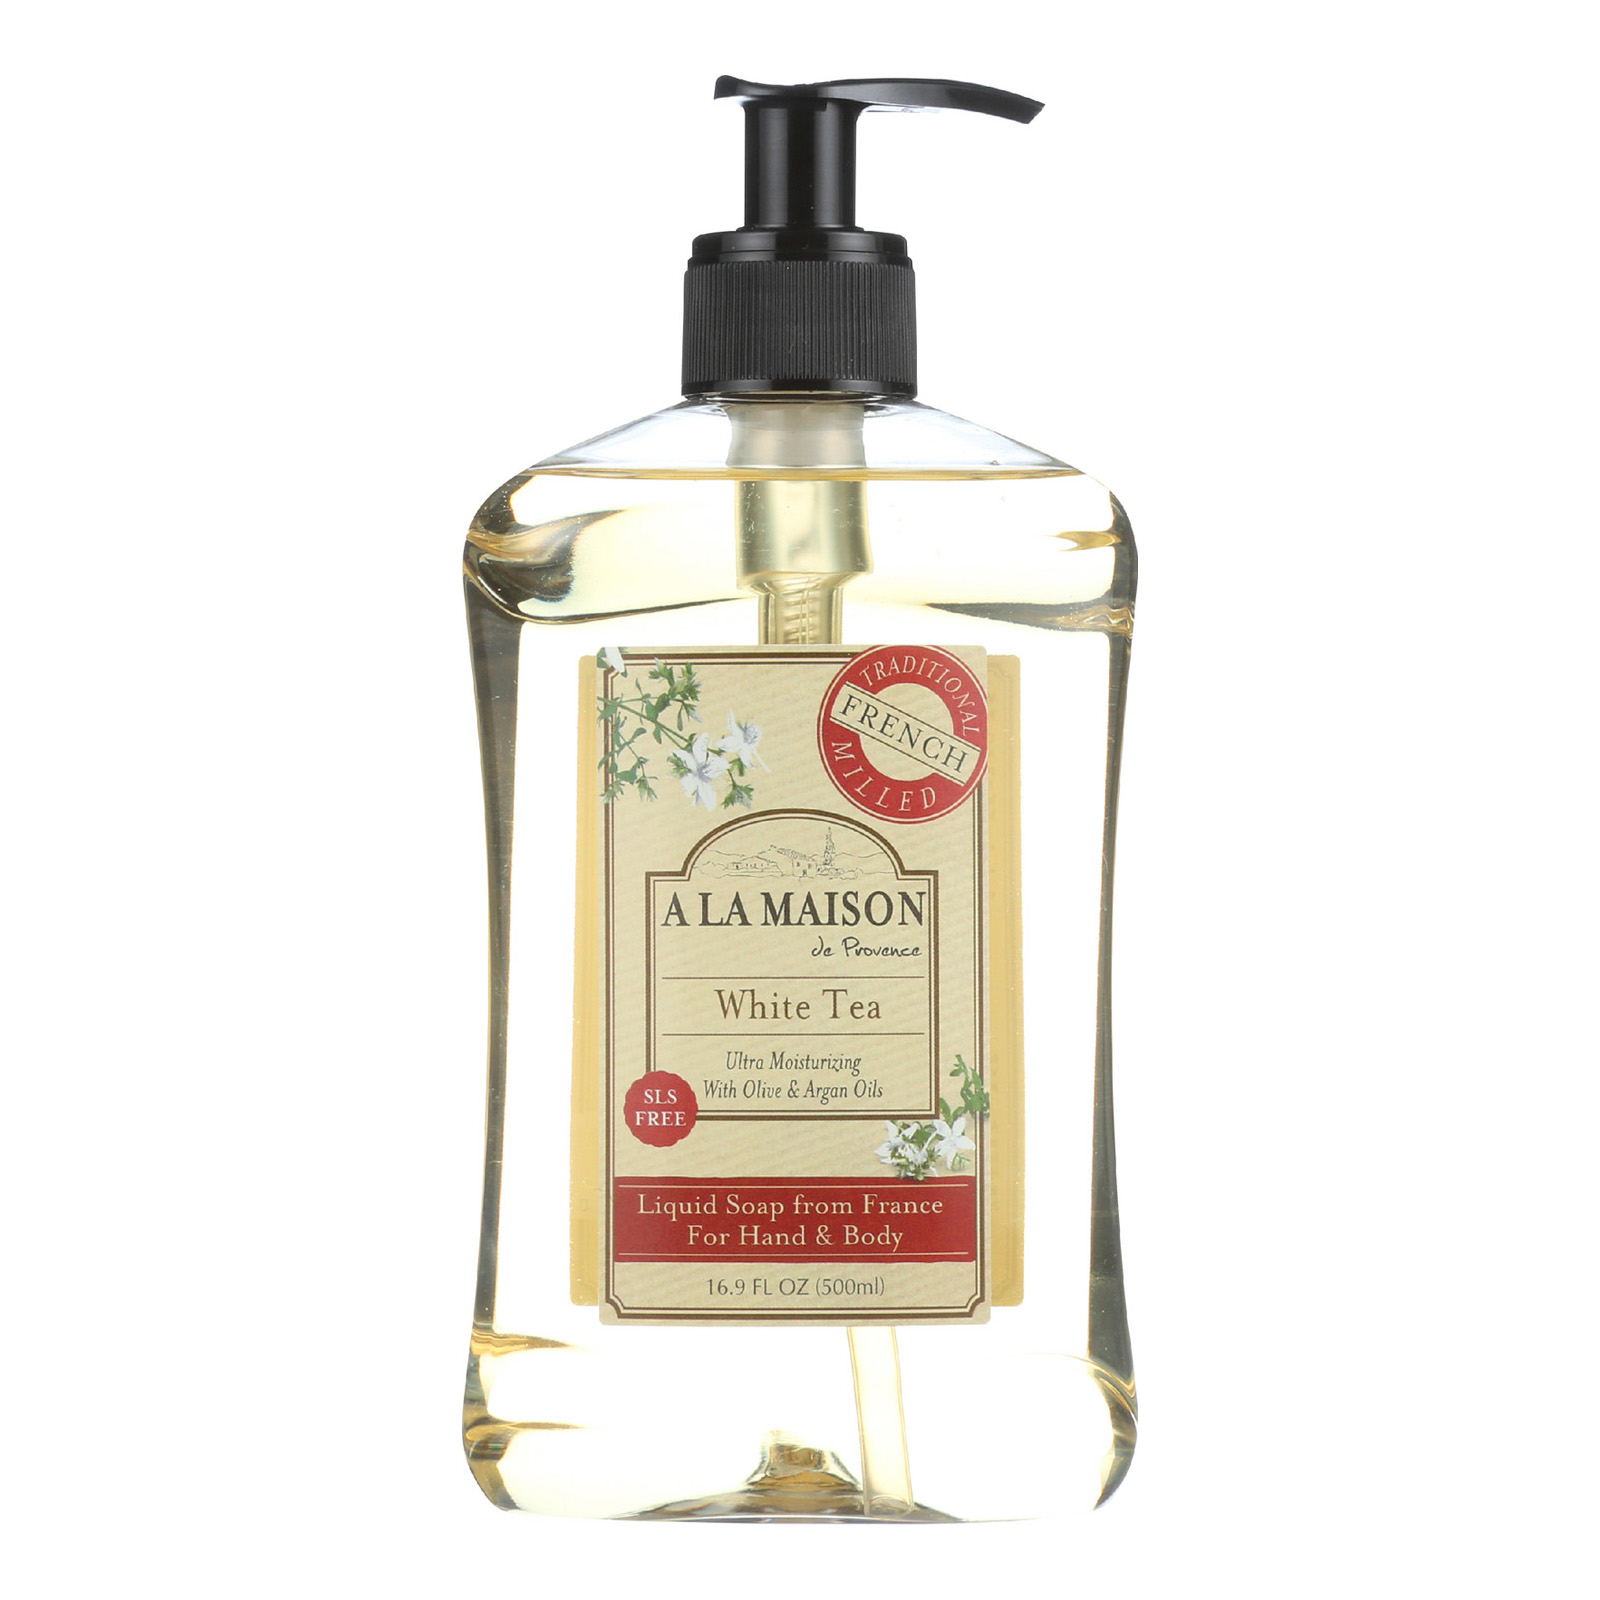 A la maison french liquid soap white tea 16 9 fl oz for A la maison french liquid soap